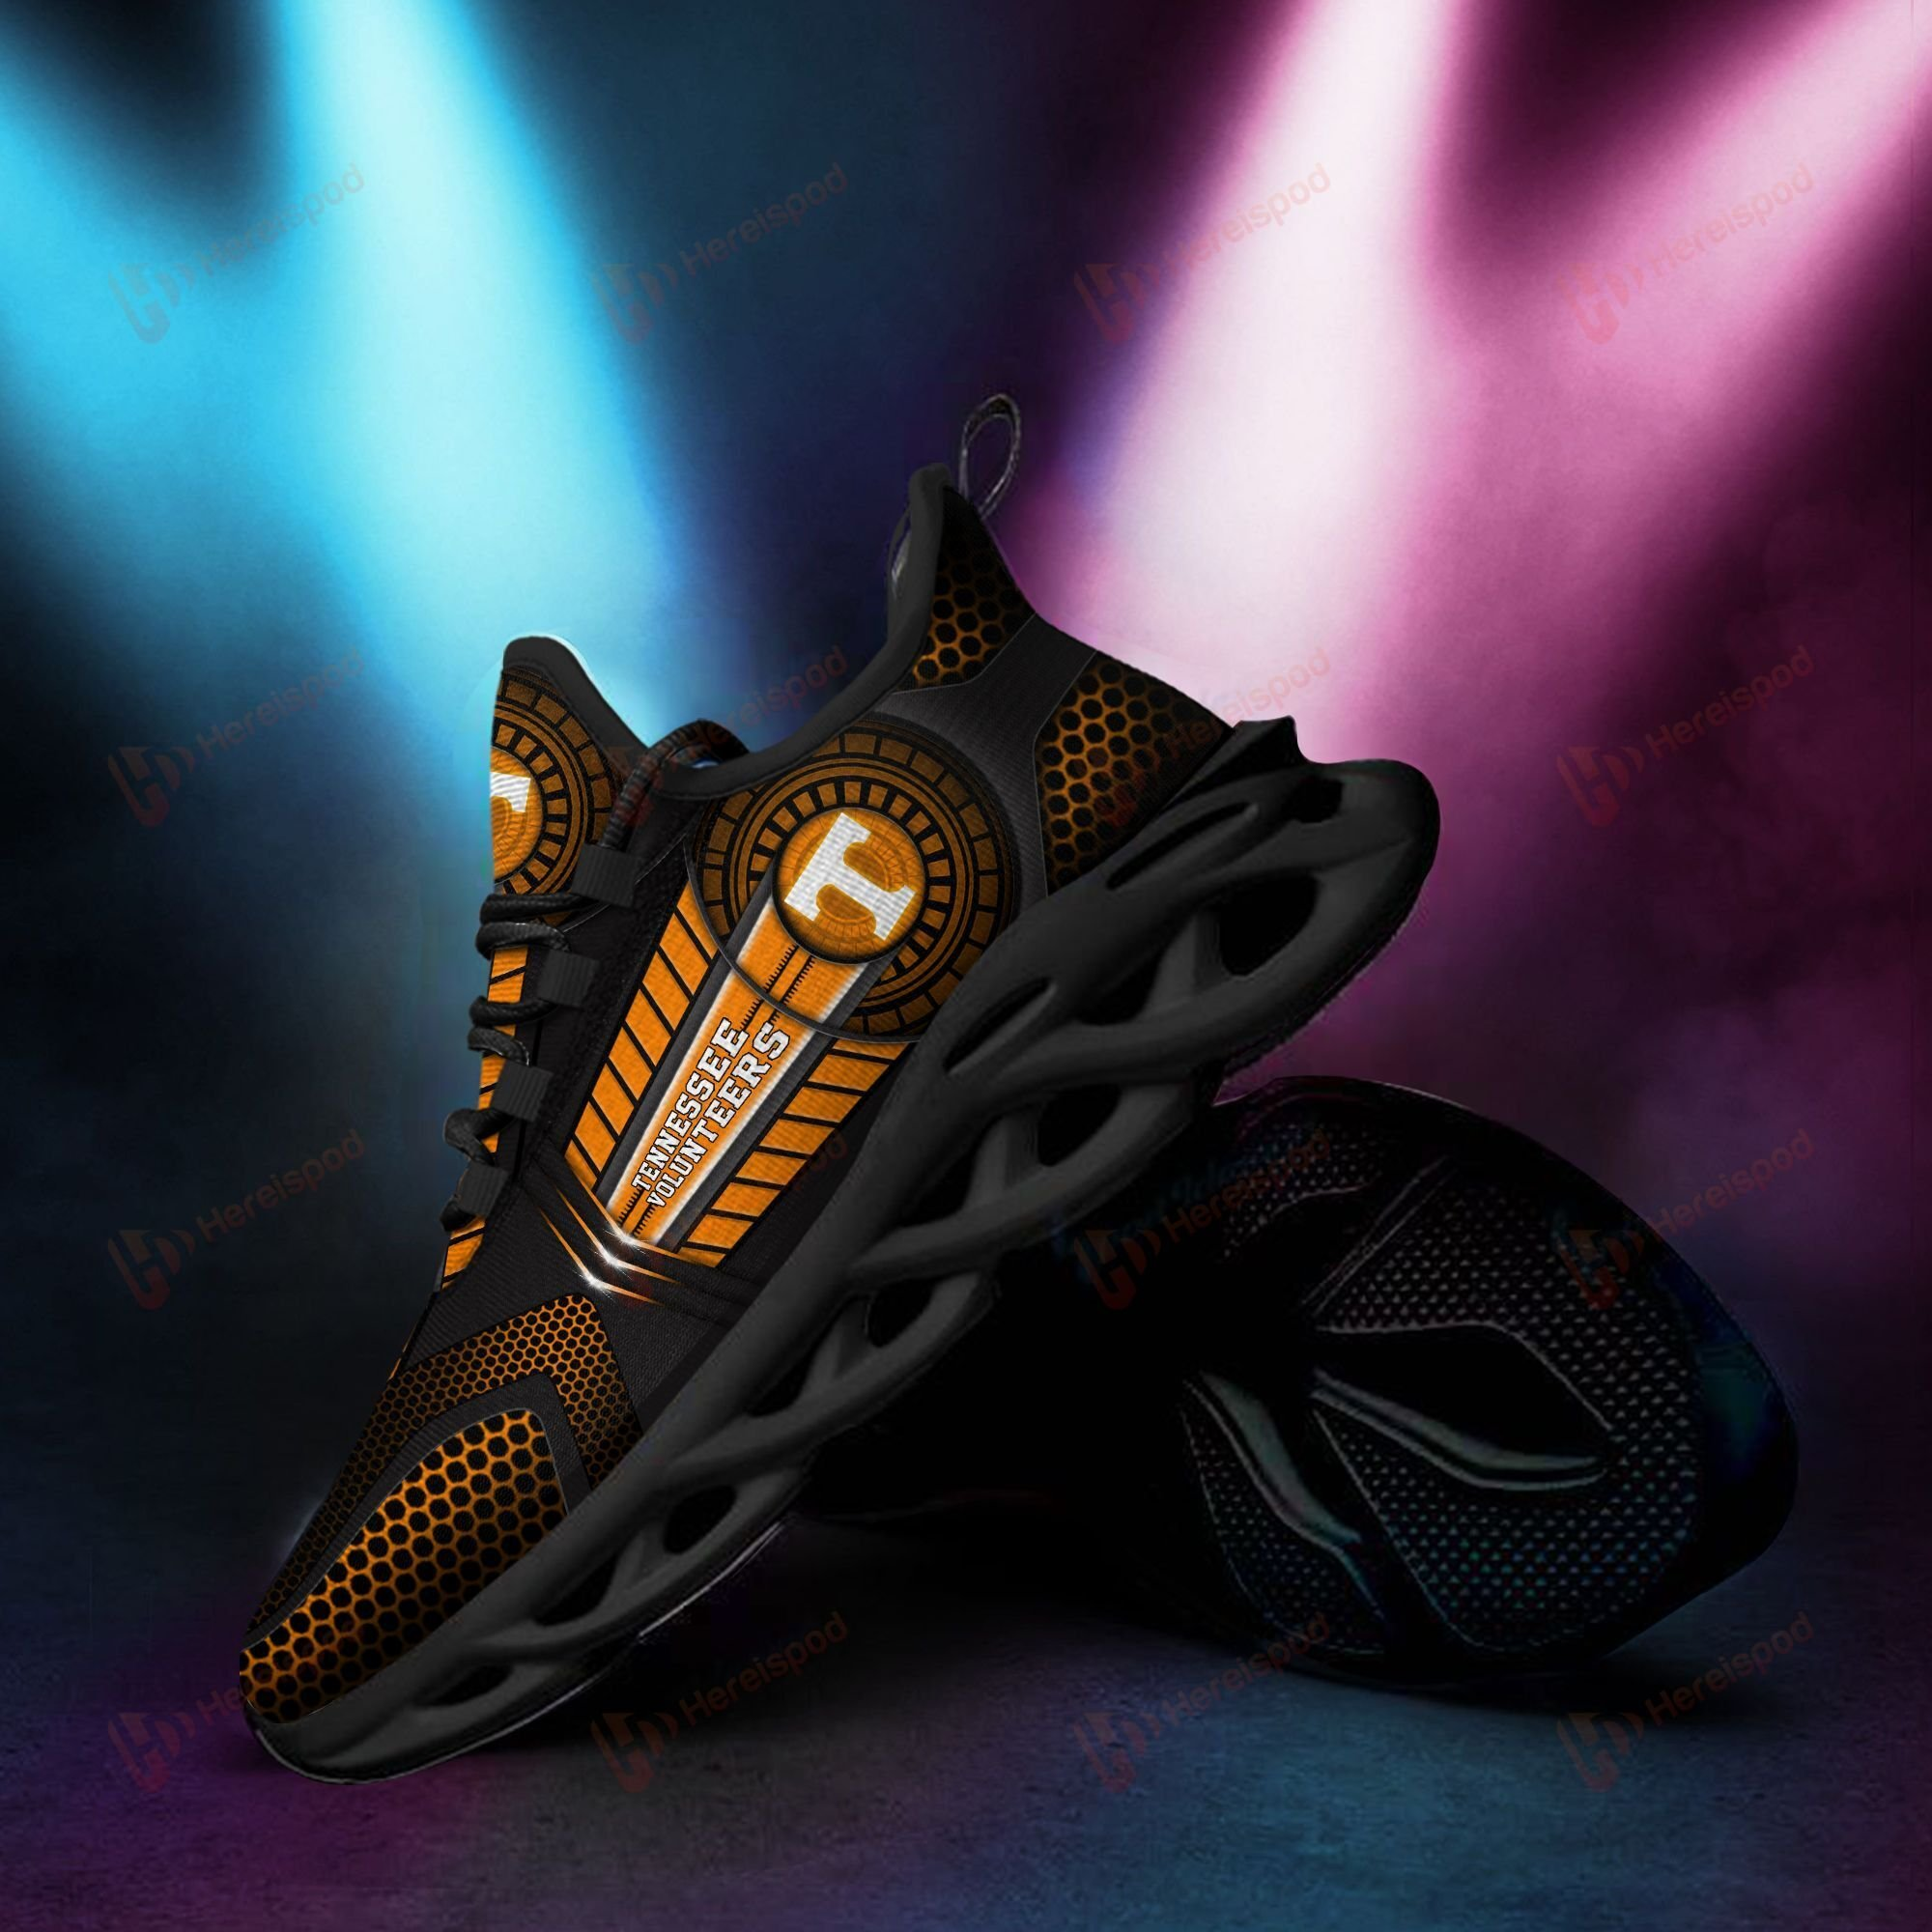 Tennessee volunteers clunky max soul shoes - LIMITED EDITION